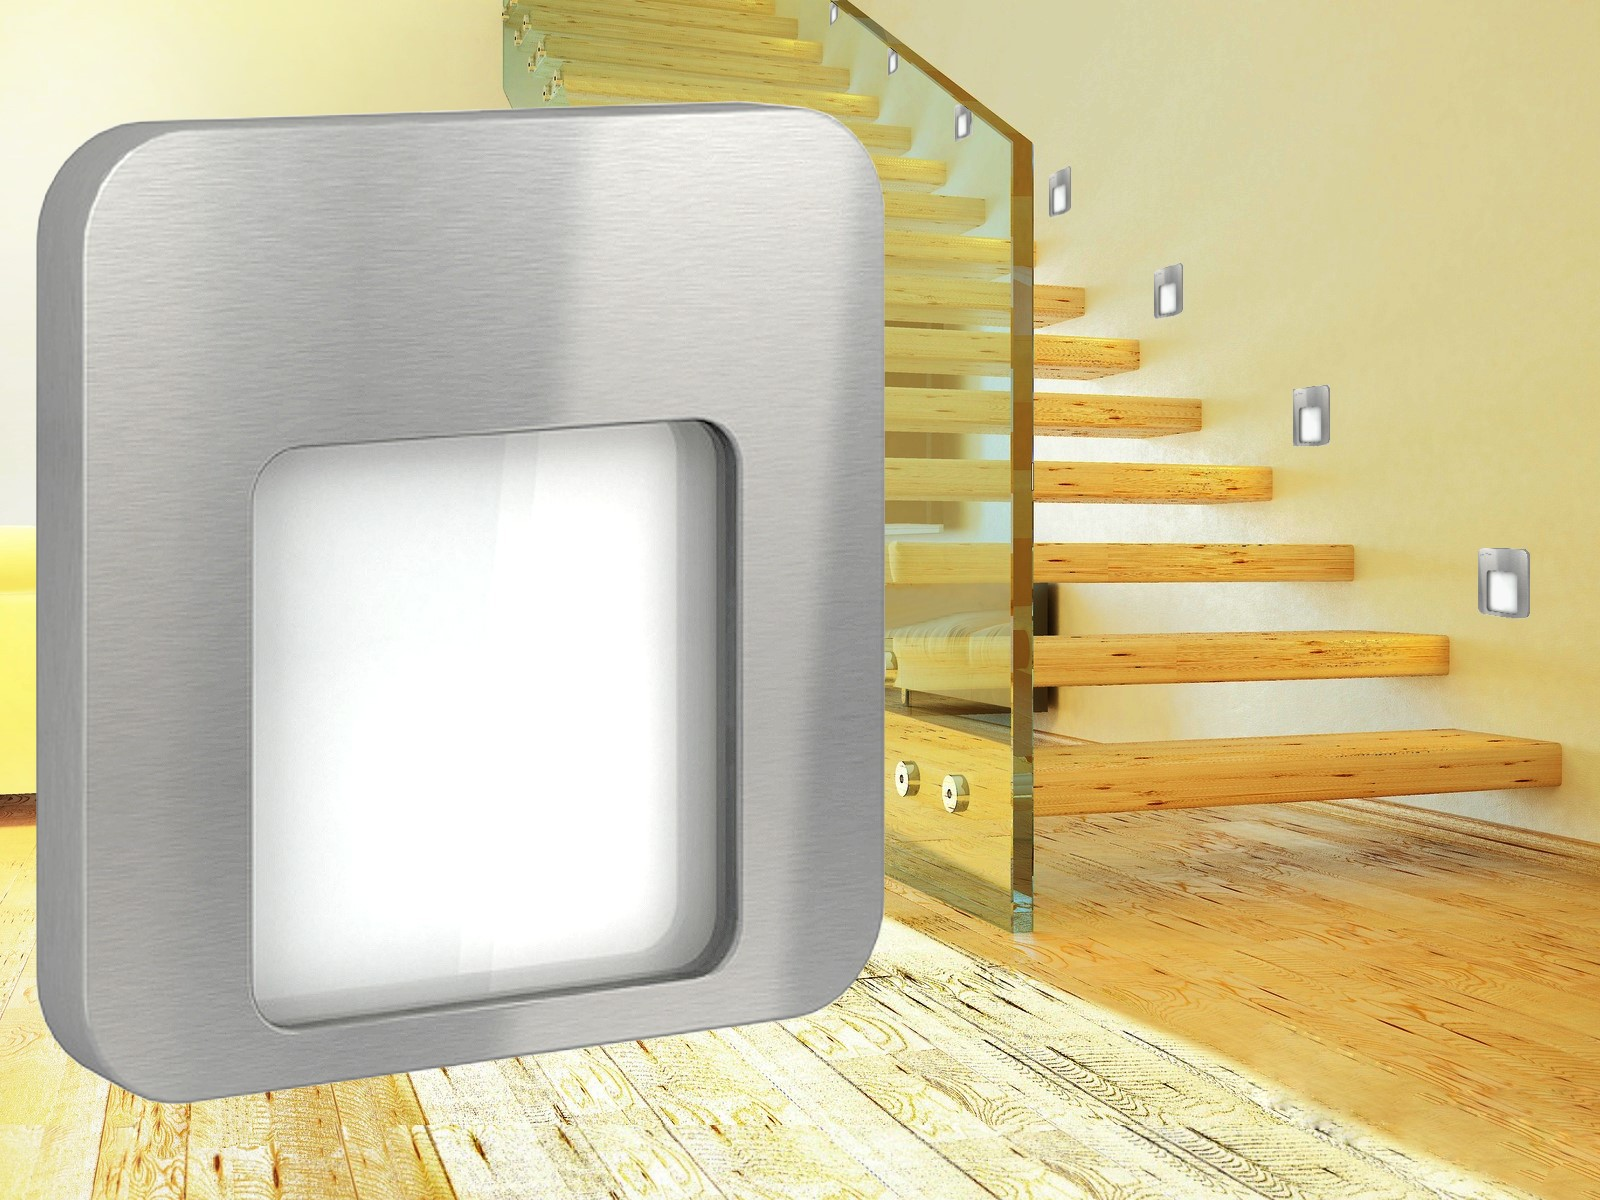 led treppen wandeinbauleuchte stufenlicht f 60mm up dose ip20 230v warm wei ebay. Black Bedroom Furniture Sets. Home Design Ideas